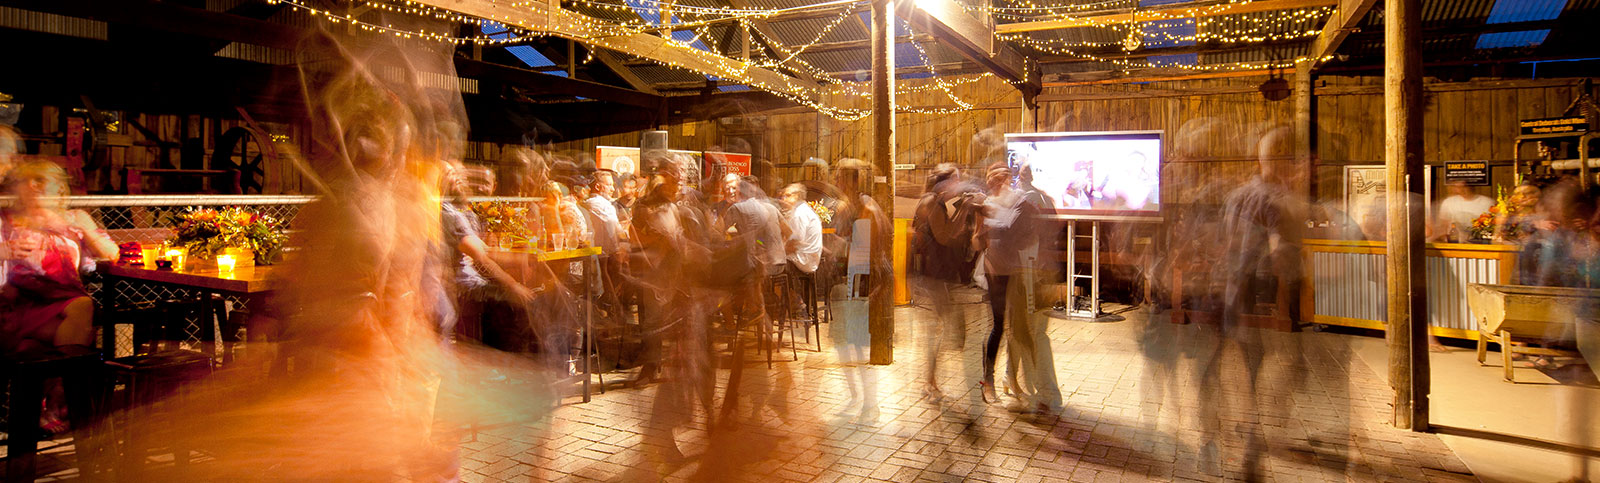 People dancing in The Panning Shed